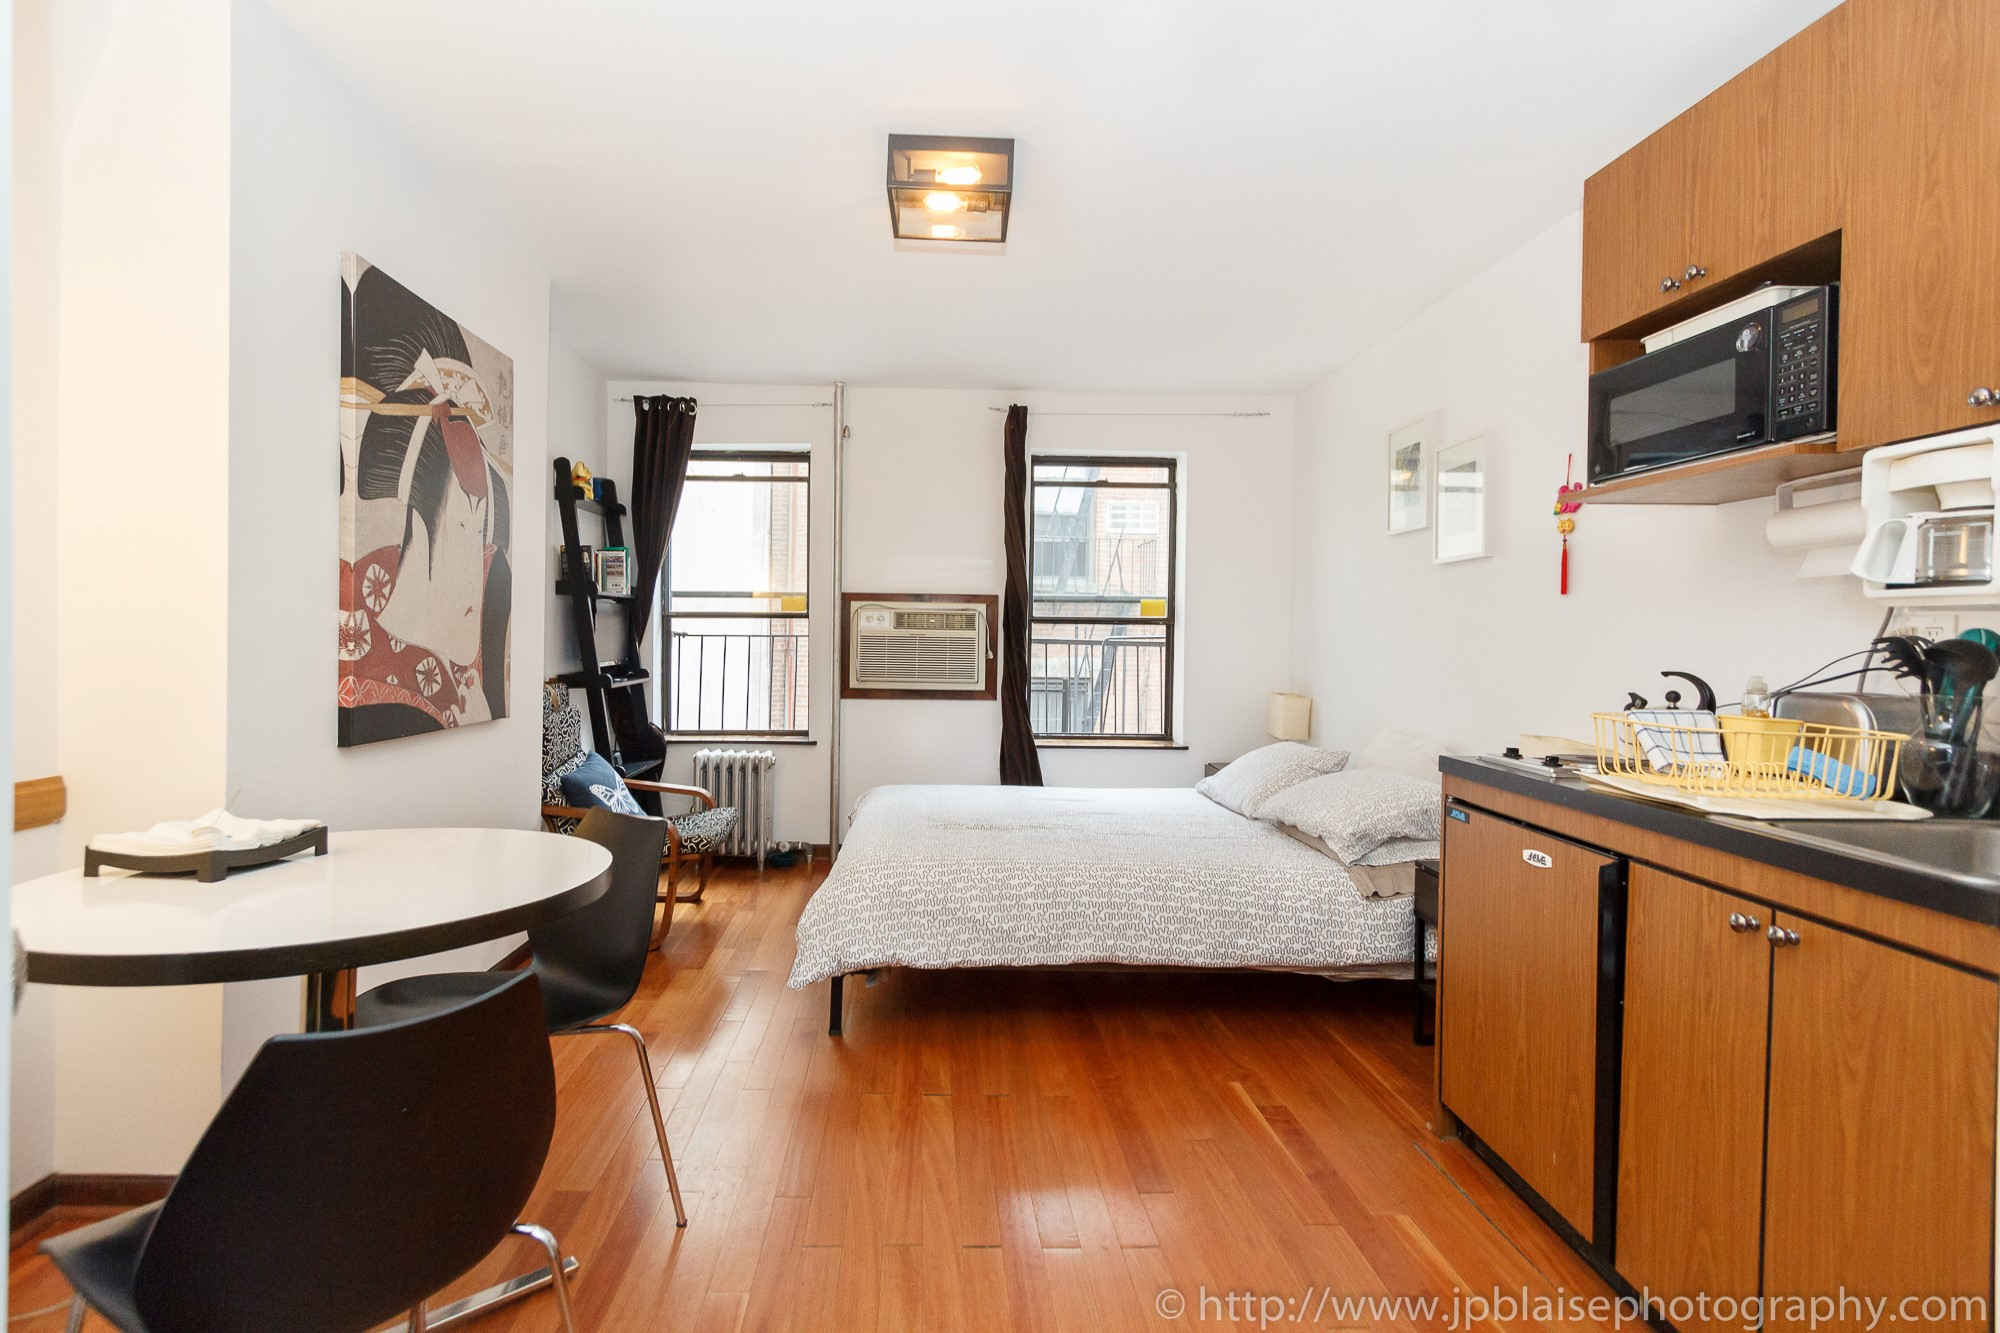 Latest Real Estate photo-shoot: Back to Hell's Kitchen ...